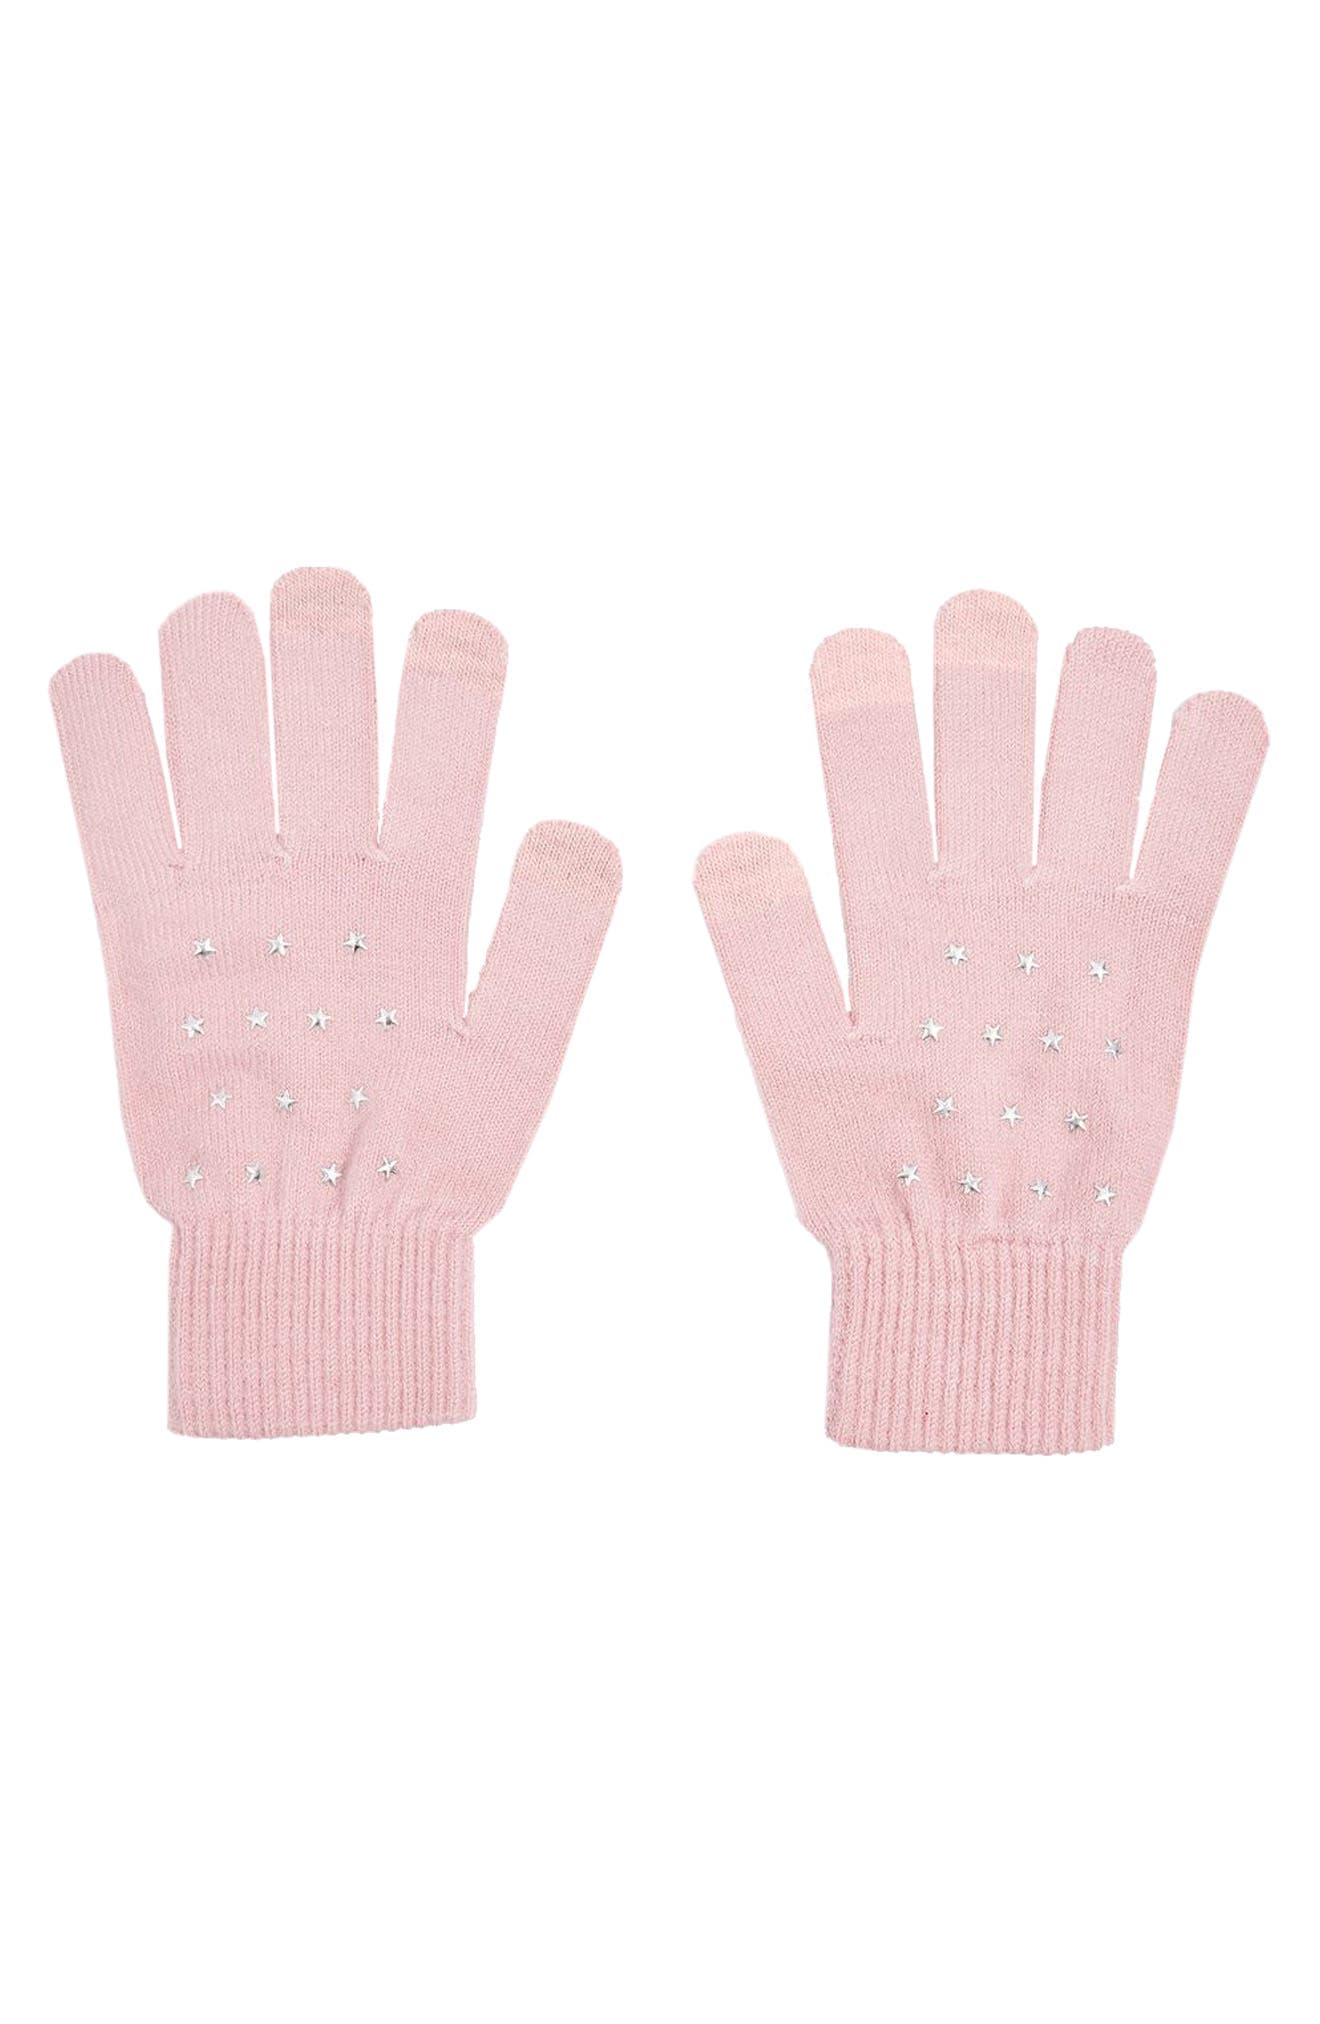 Star Knit Gloves,                         Main,                         color, 250